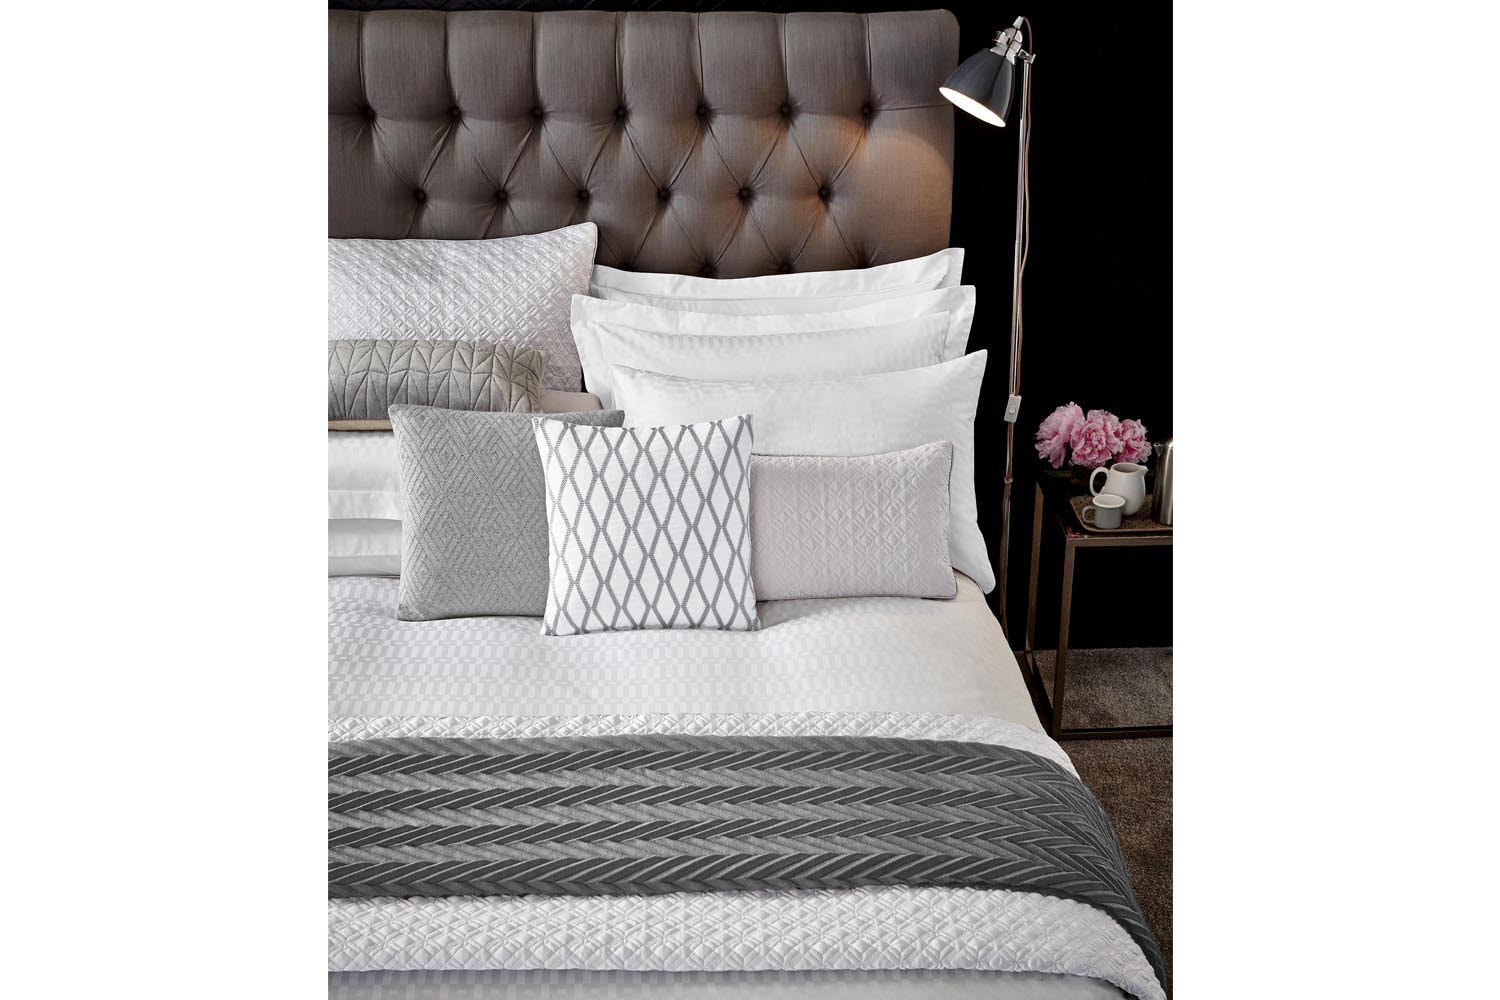 Kilburn Duvet Cover | King